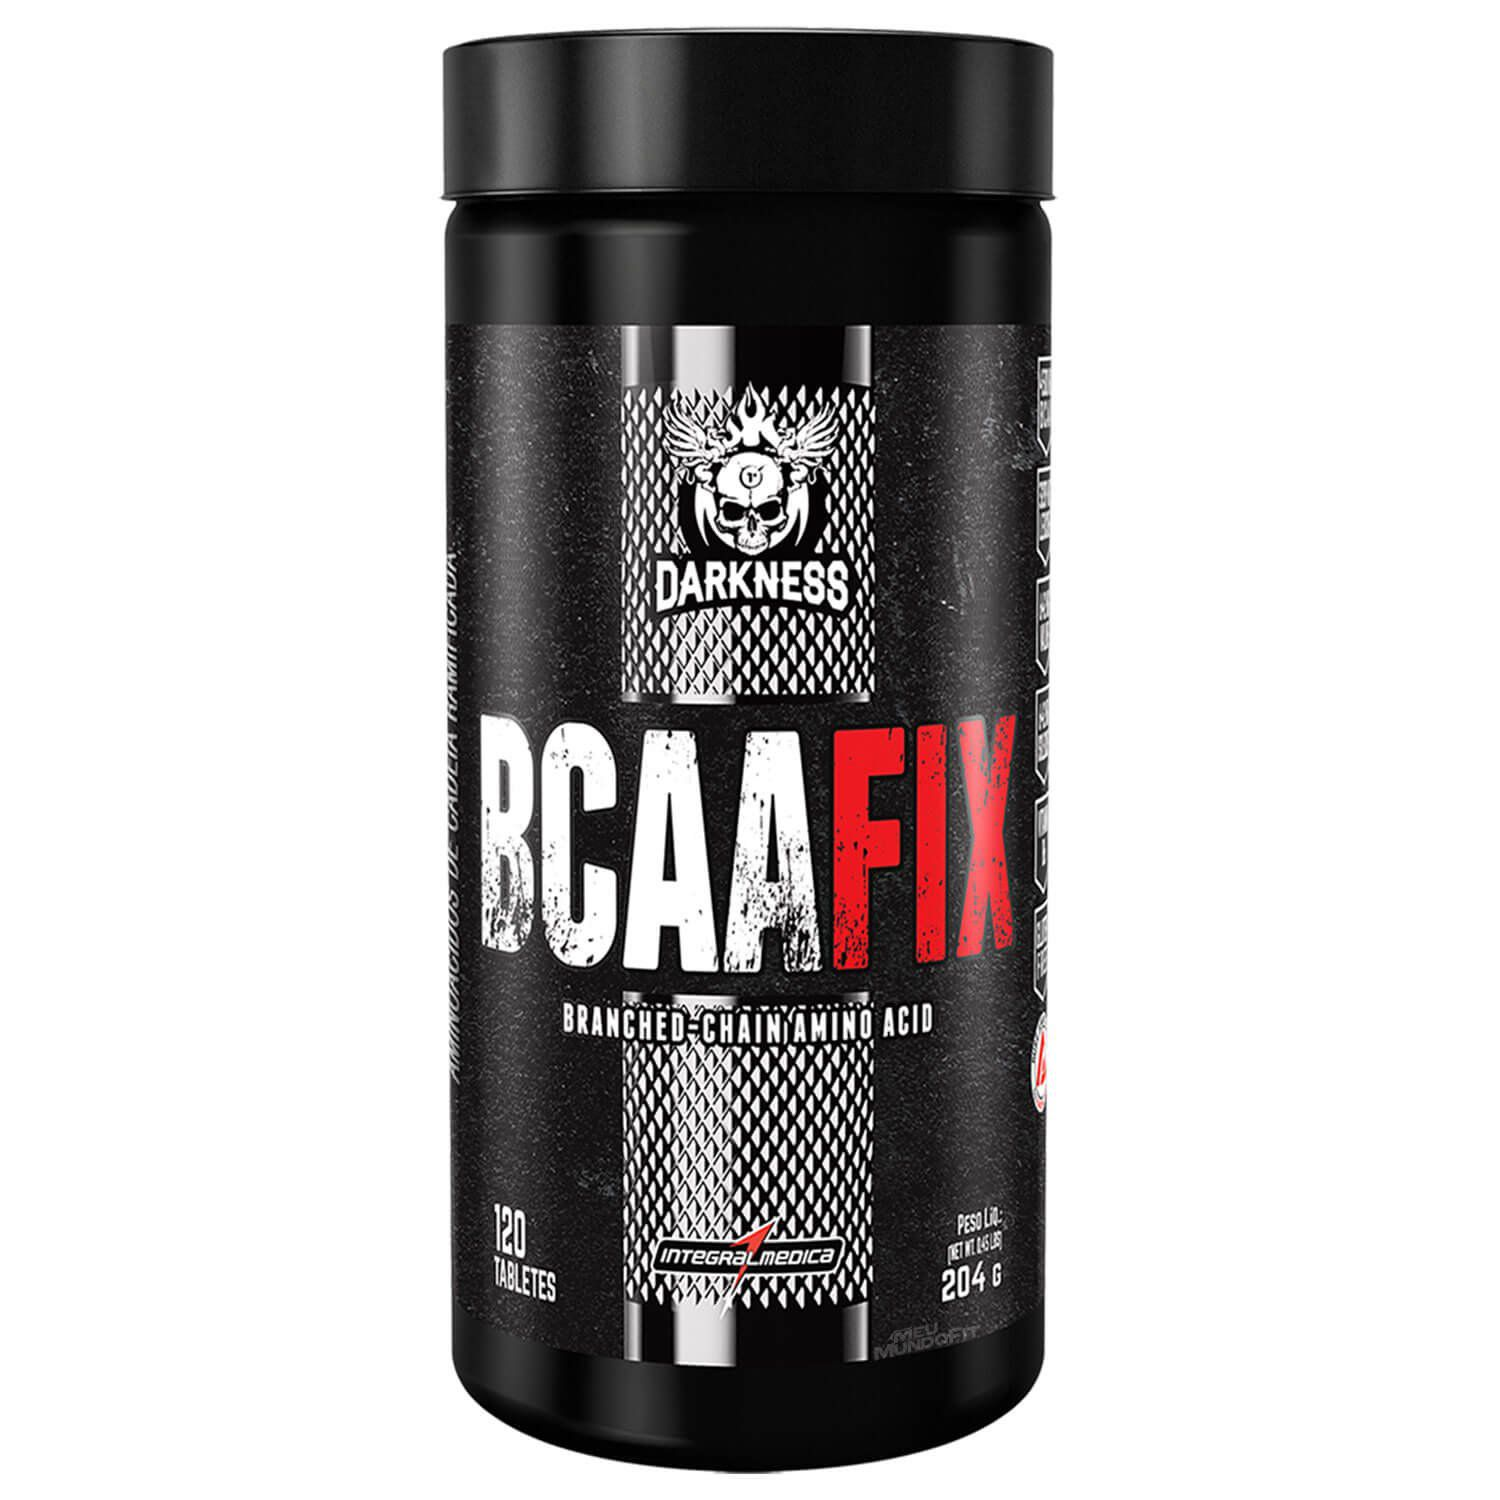 BCAA FiX | Darkness - Integral Médica | 120 Tablets